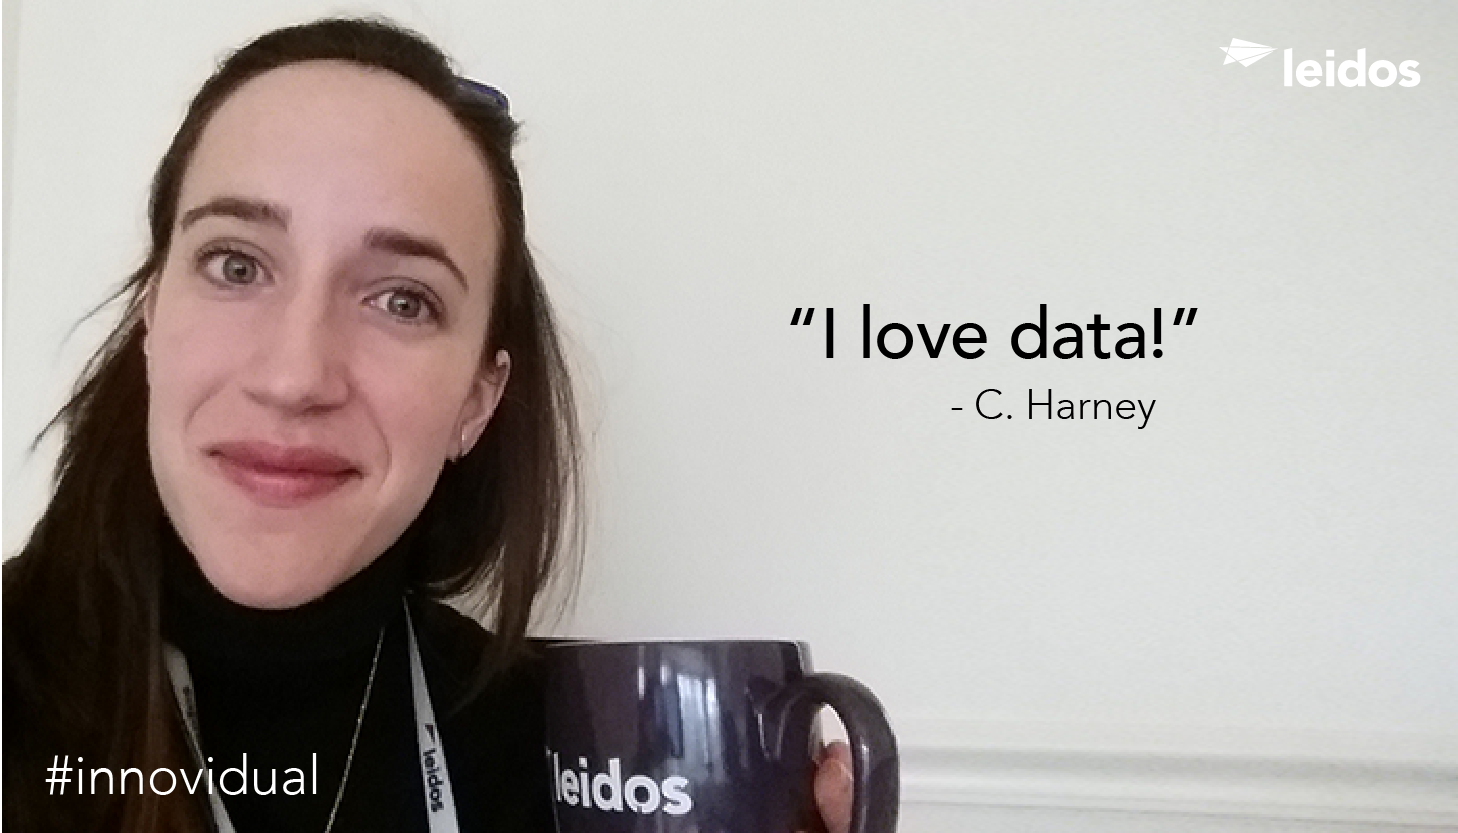 Chris Harney is a data systems engineer